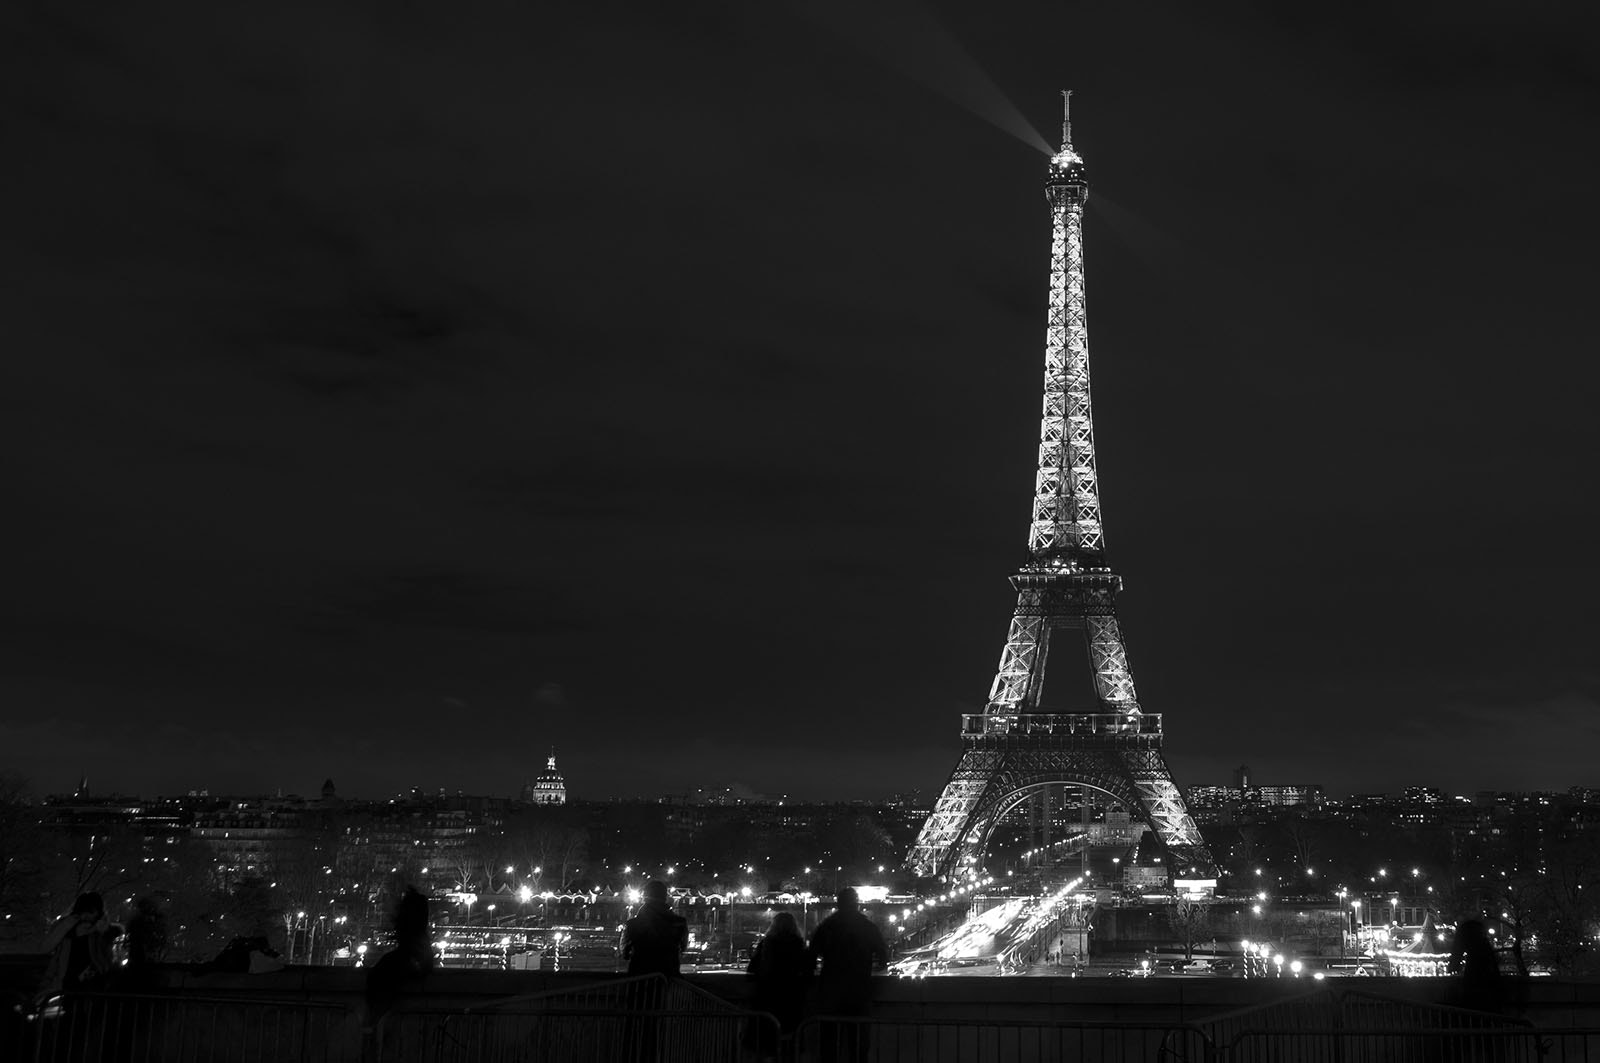 Photograph Paris - Eiffel tower view from the Trocadero by FkG  on 500px